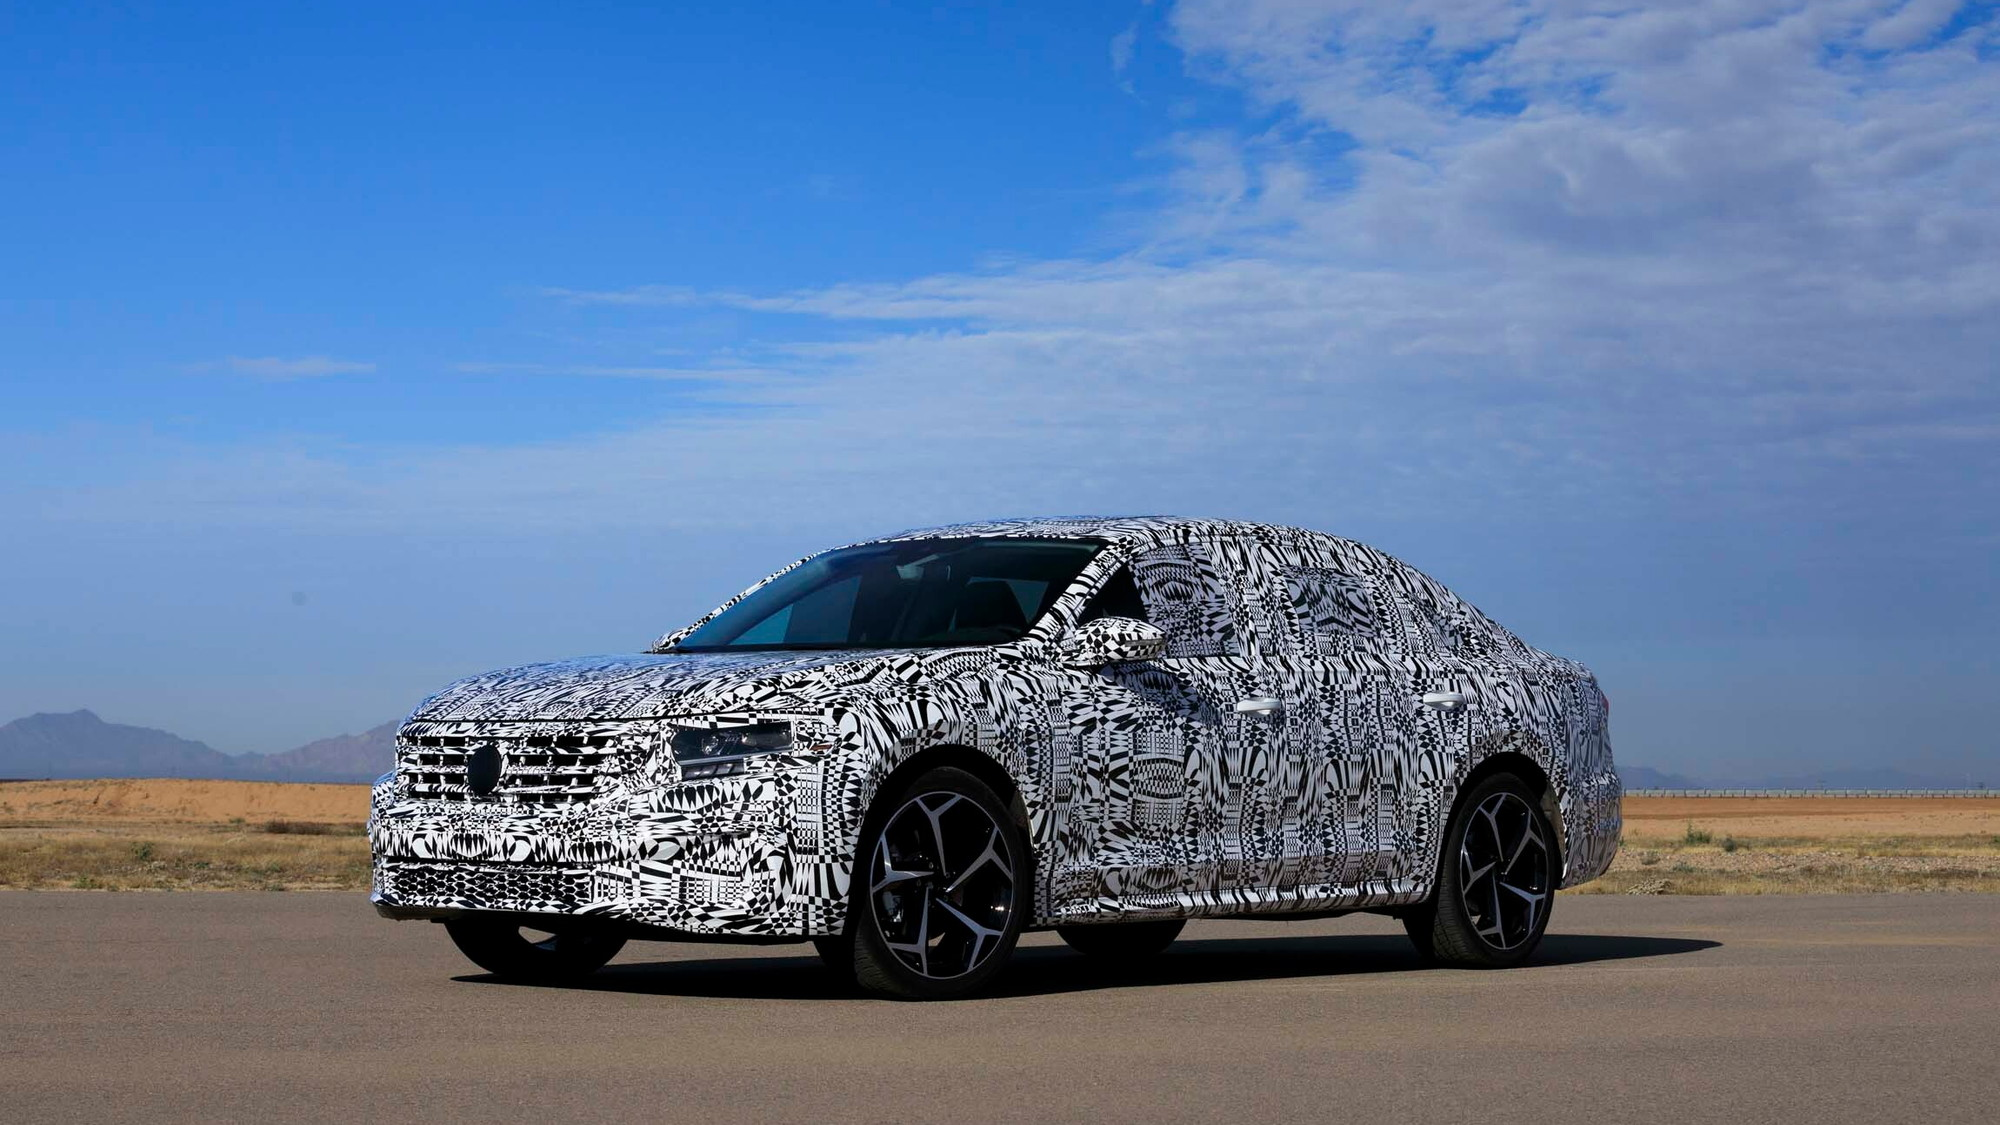 2020 Volkswagen Passat prototype first drive - December 2018